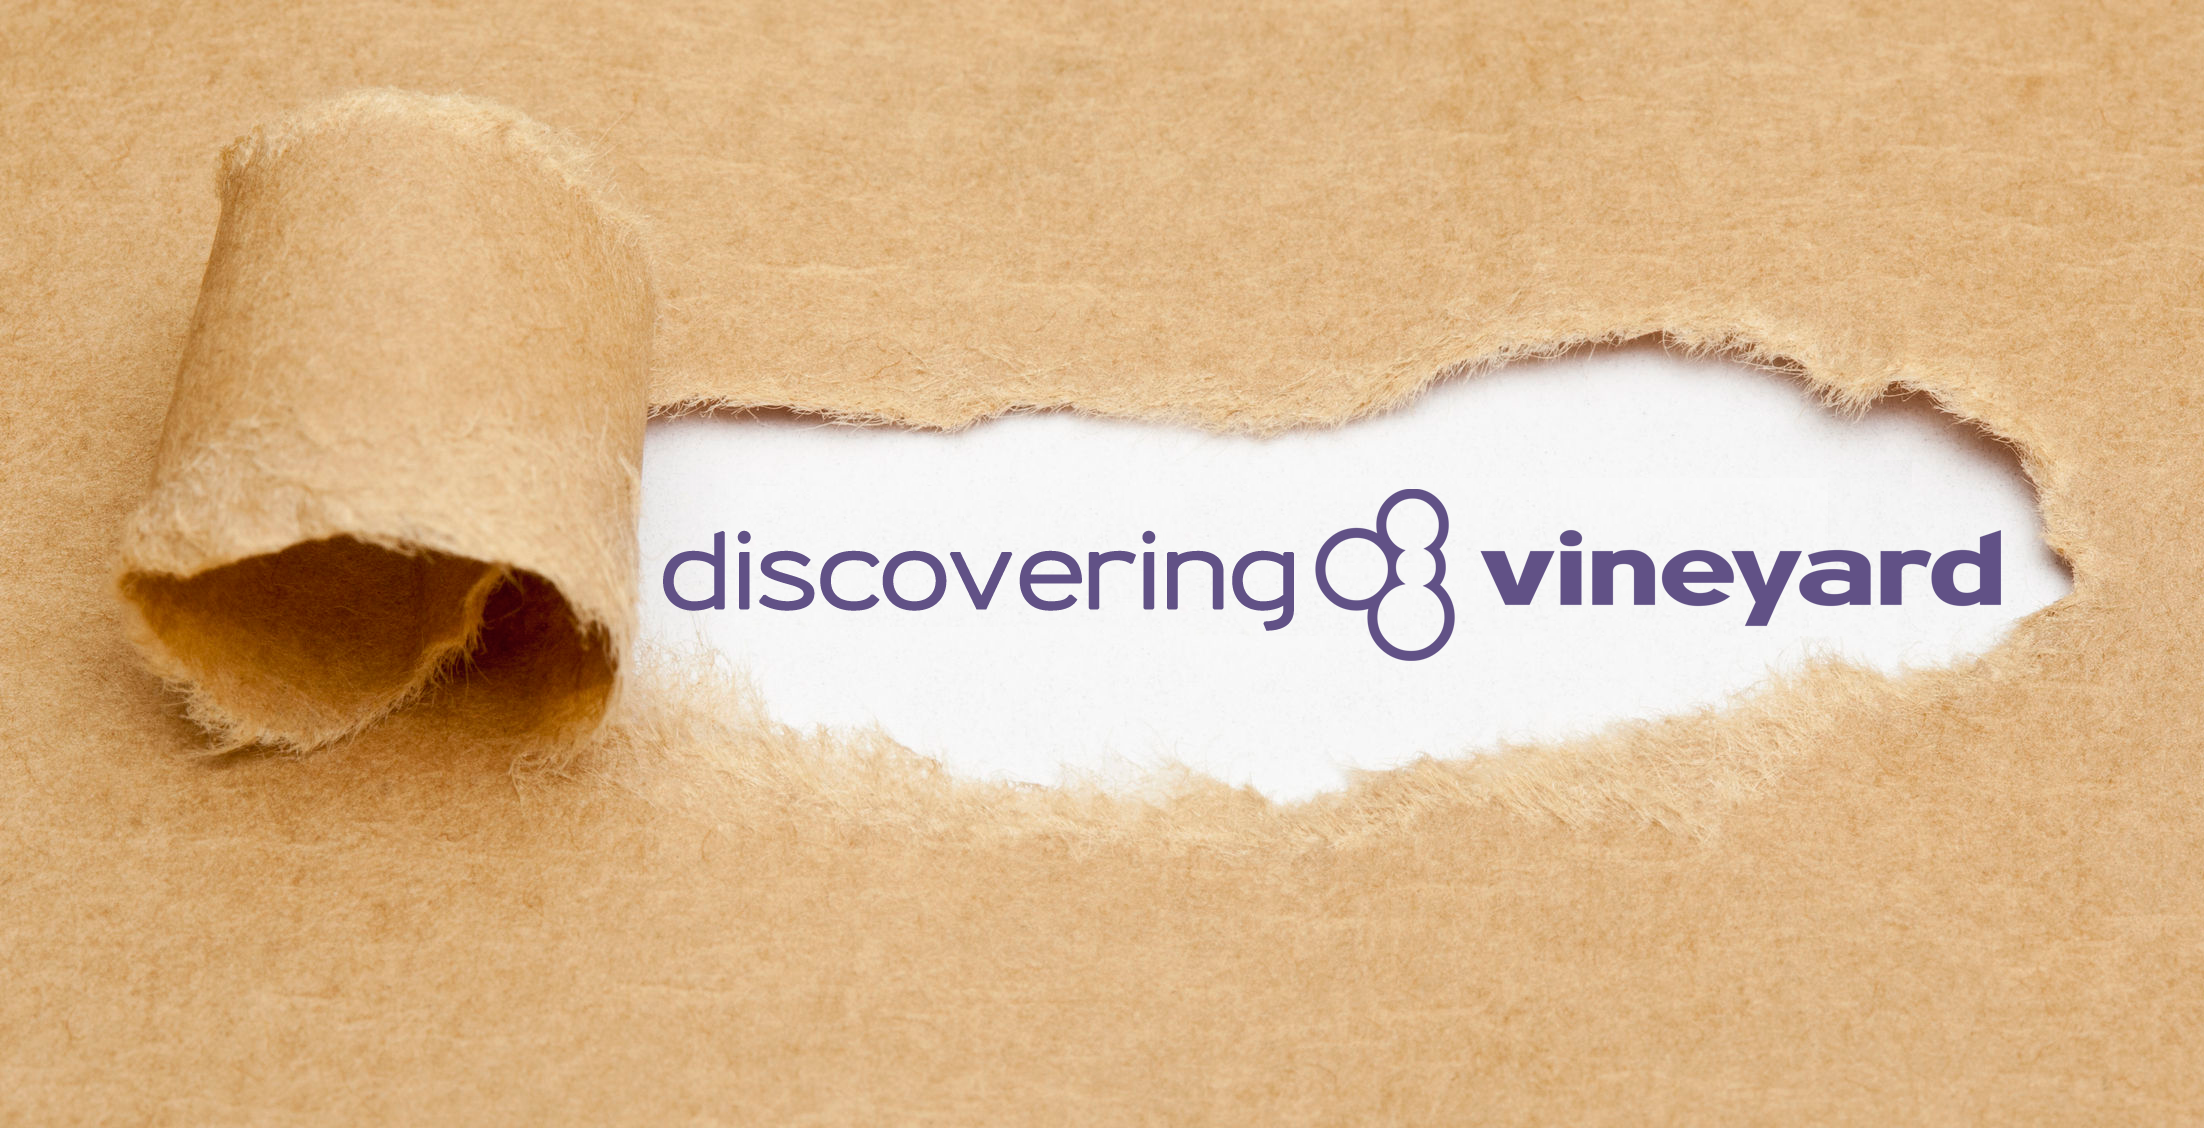 Discovering Vineyard evening – 20th Nov